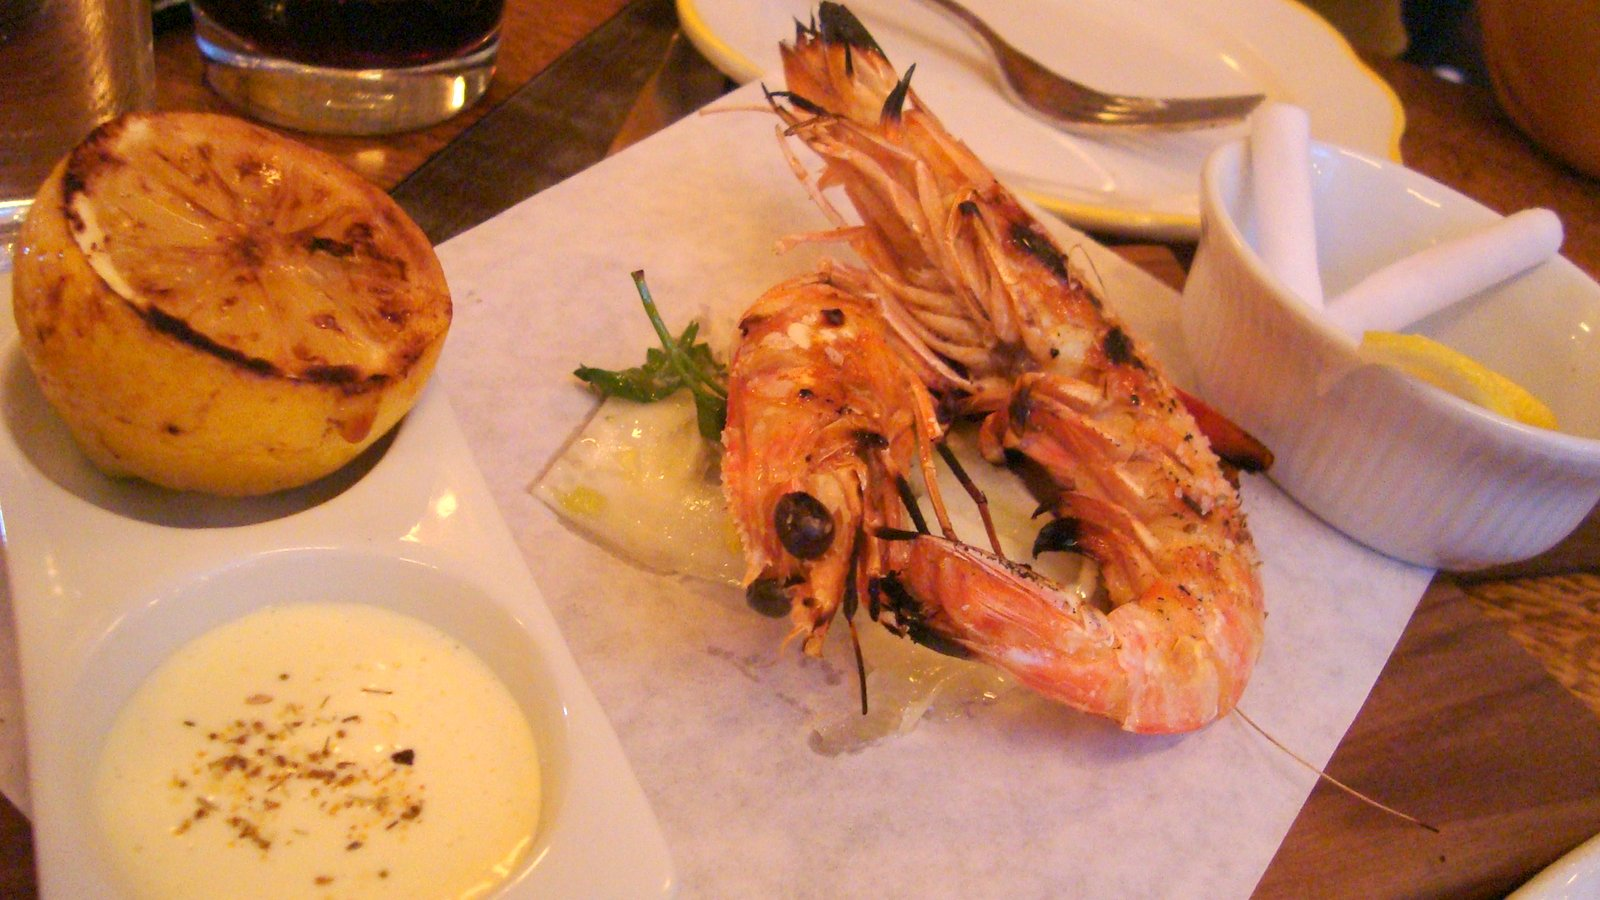 Langostino a la braza - grilled prawn, fennel, garlic yogurt sauce.